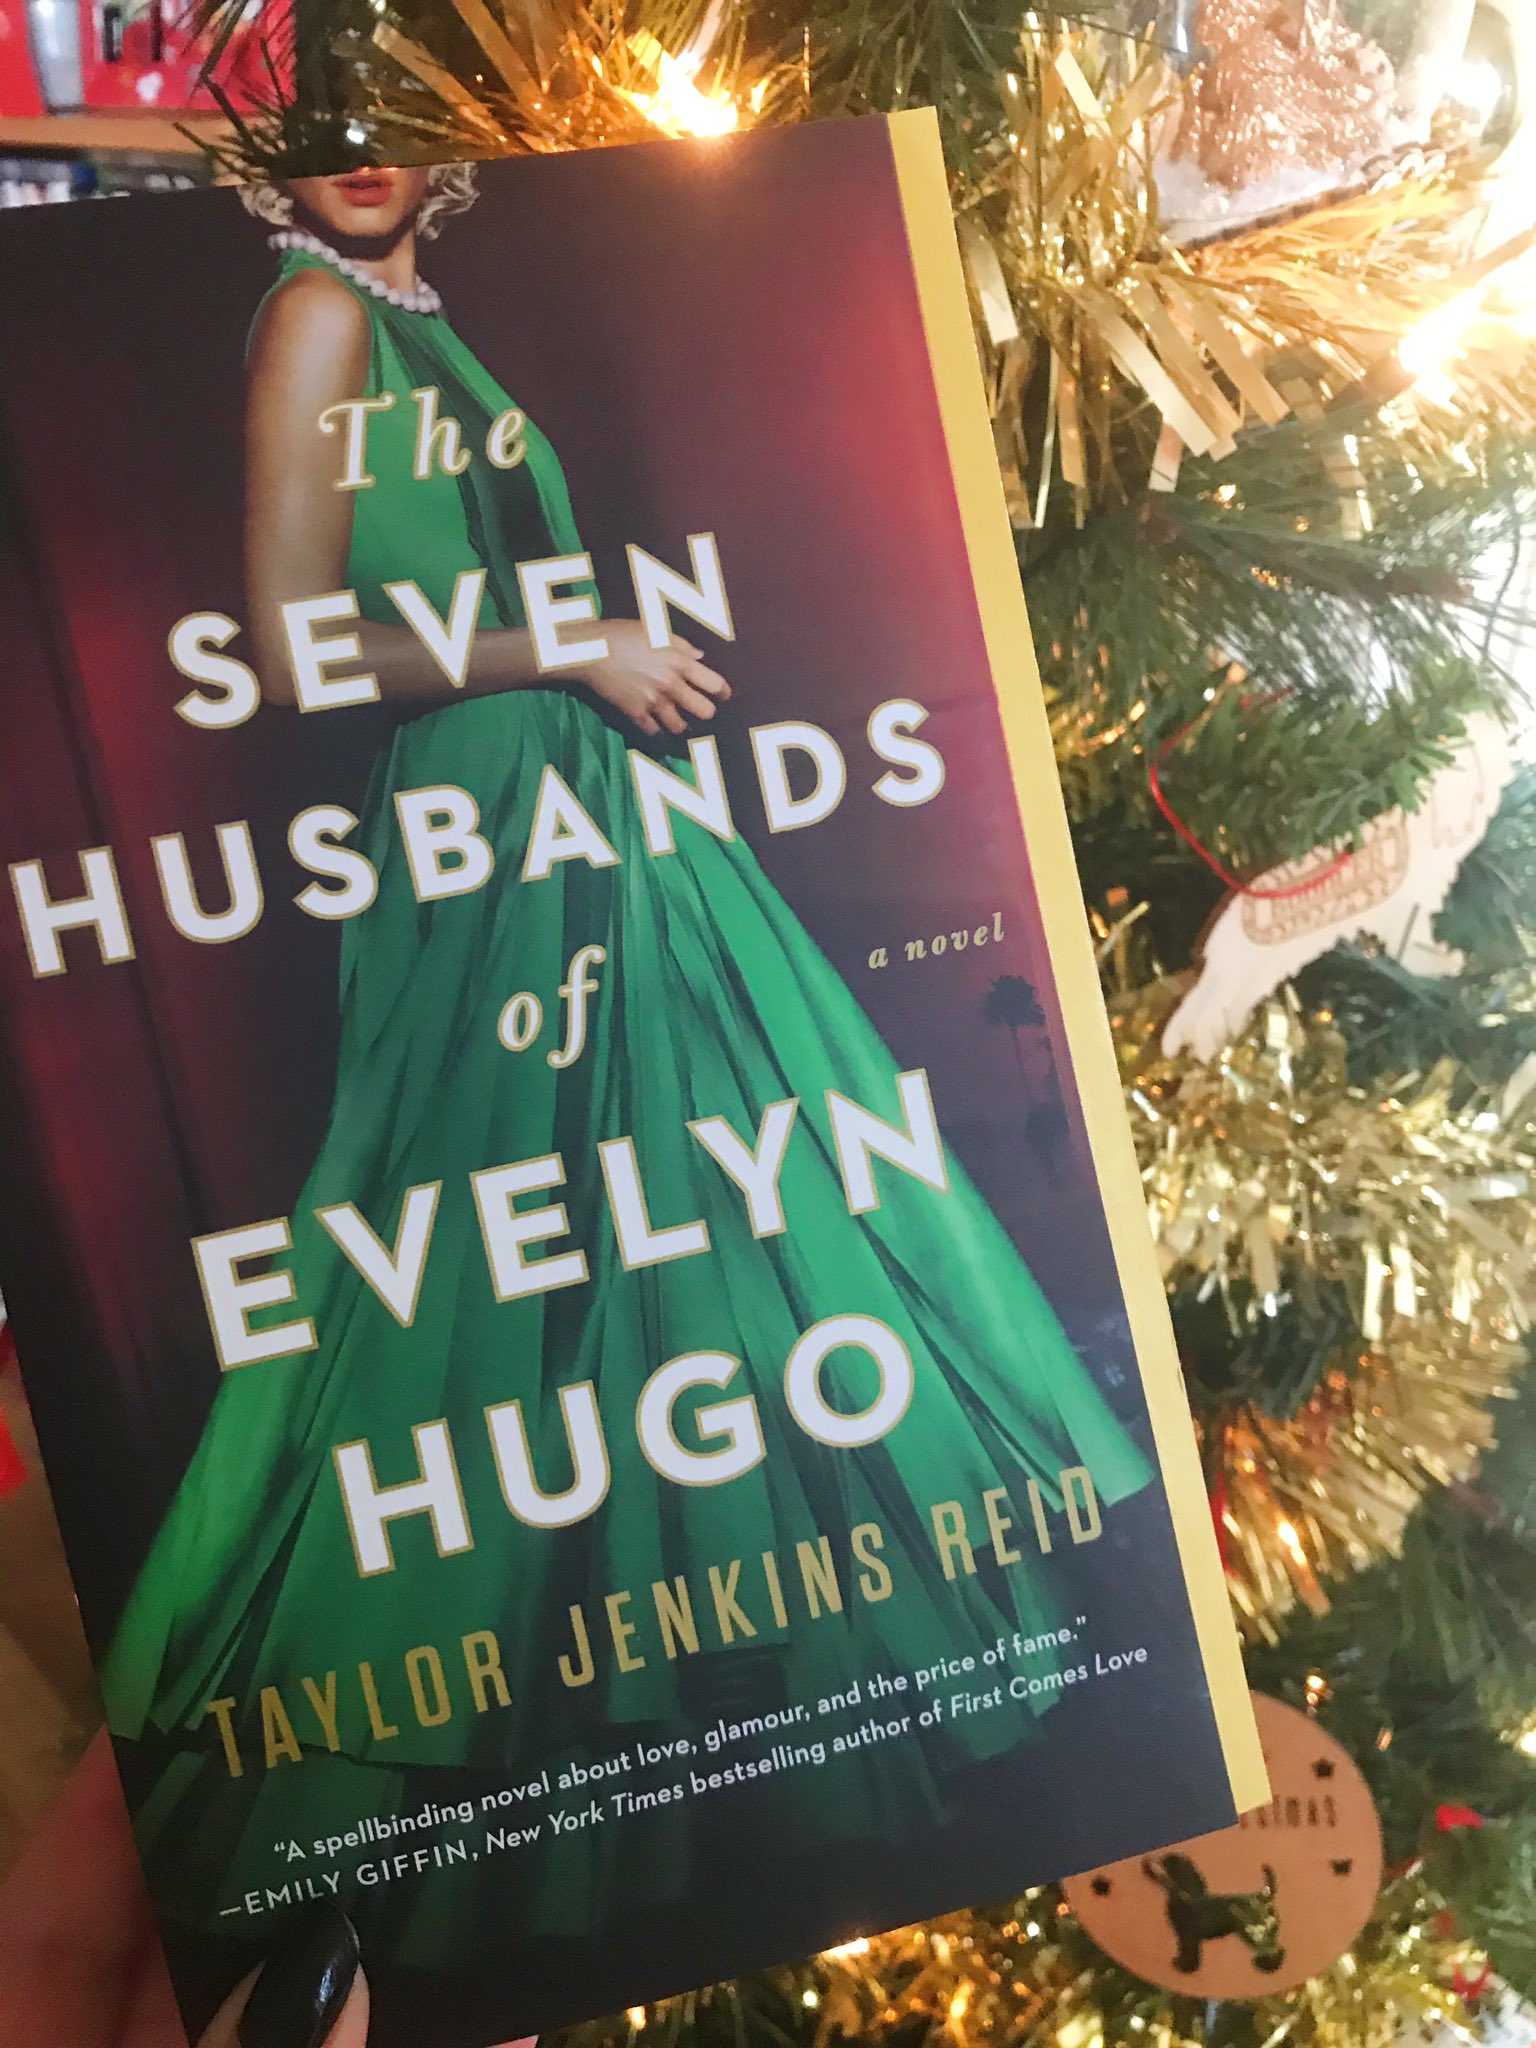 The Seven Husbands of Evelyn Hugo by Taylor Jenkins Reid book held up in front of the Christmas tree